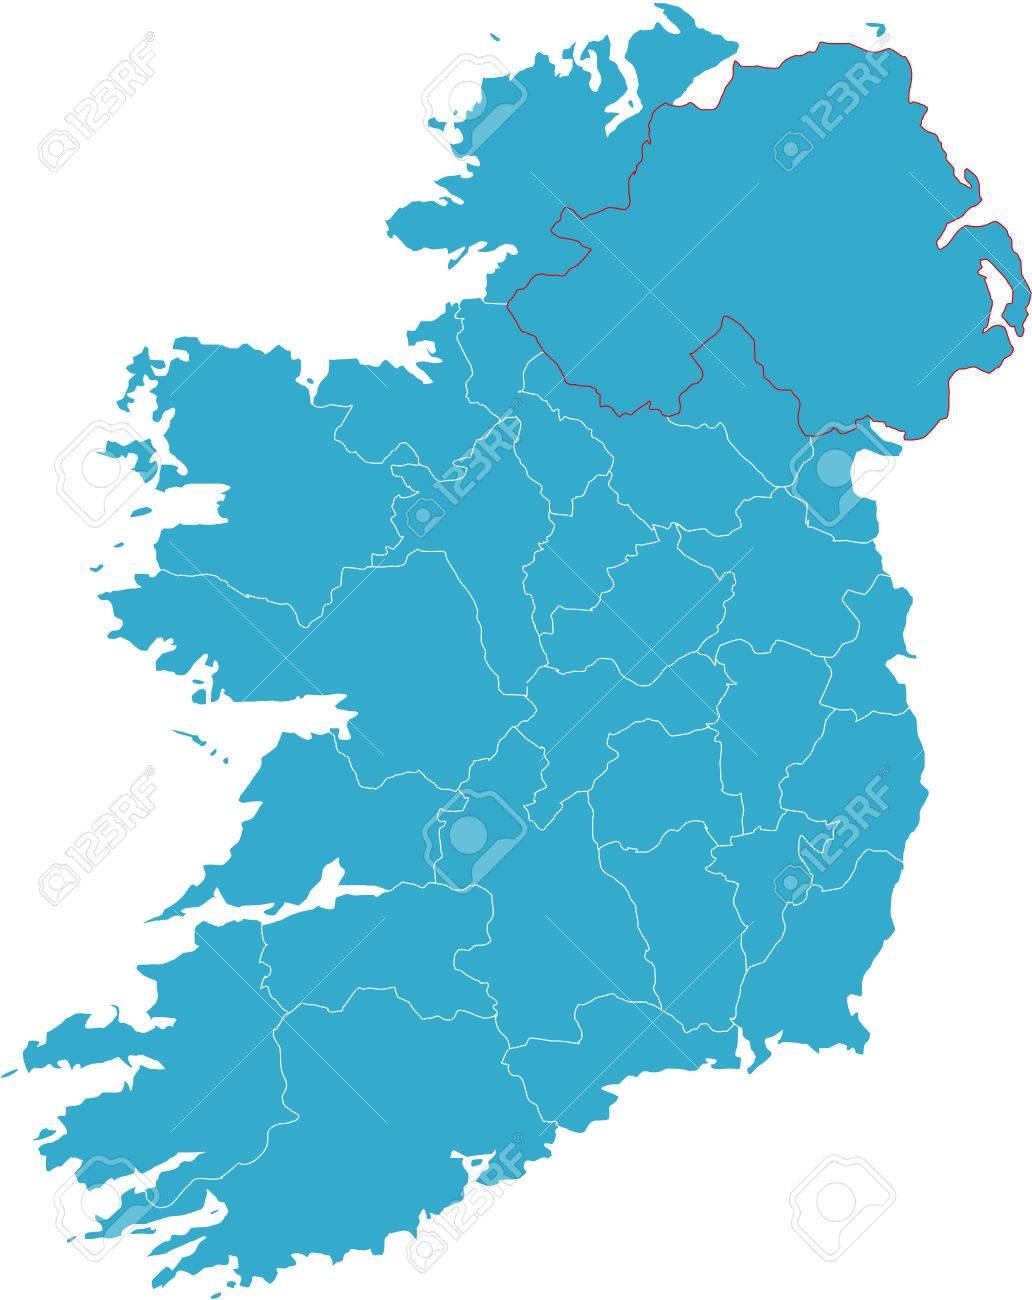 Country Map Of Ireland.There Is A Map Of Ireland Country Royalty Free Cliparts Vectors